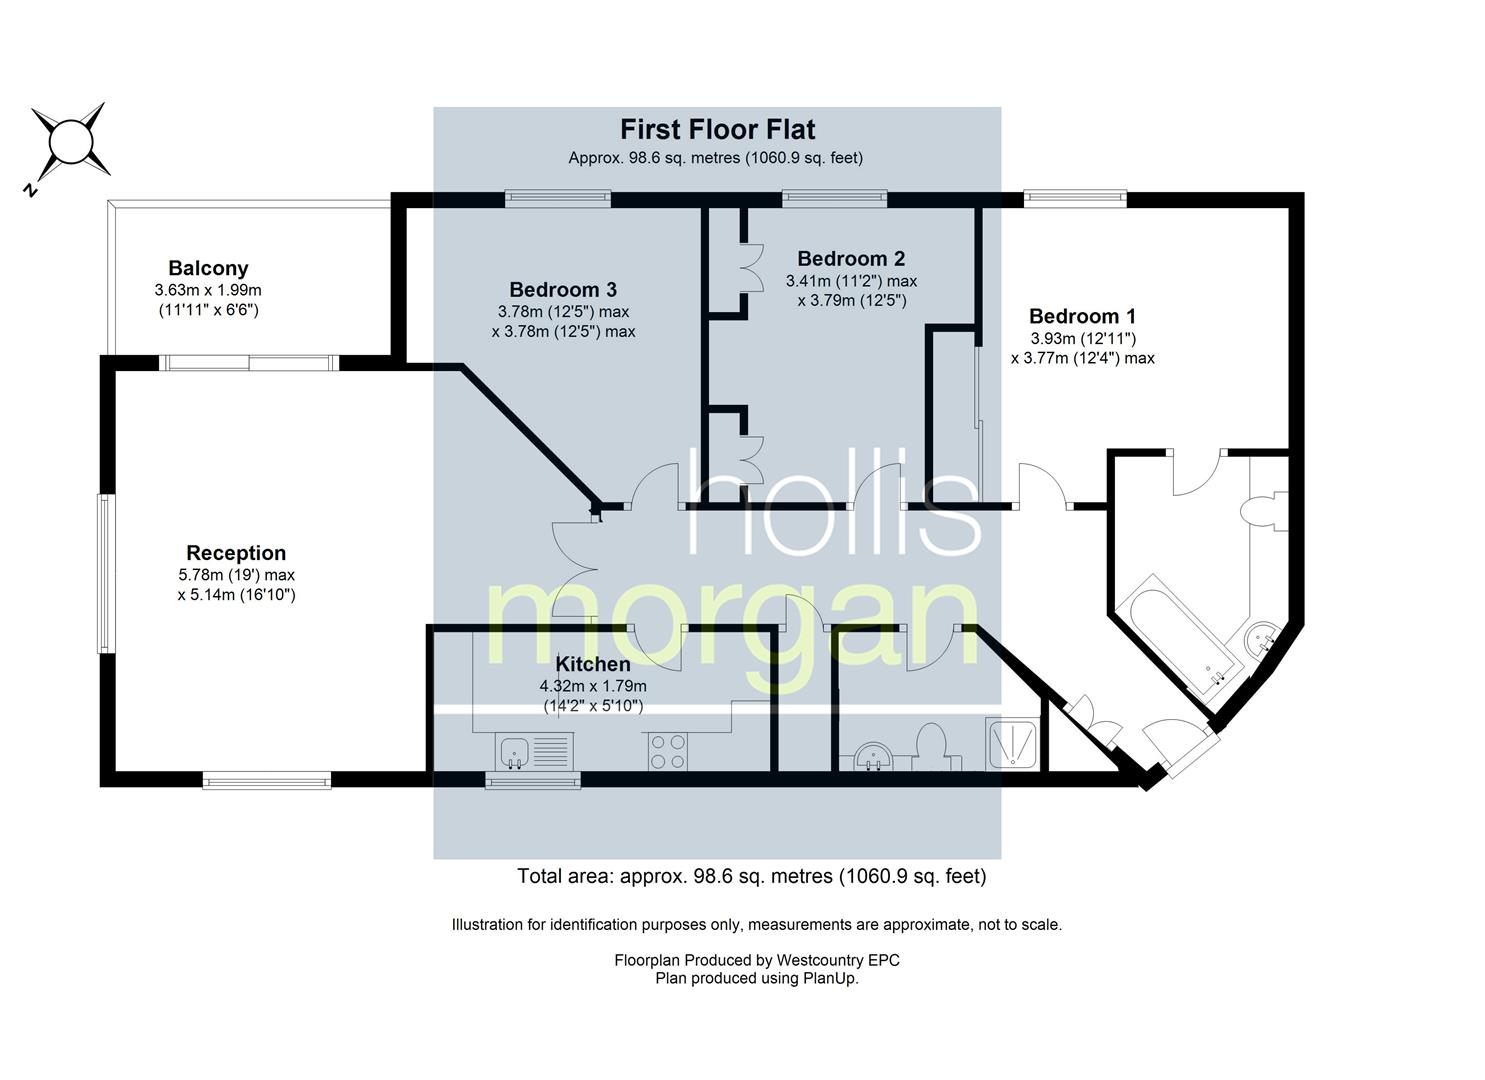 Floorplans For Marklands, Sneyd Park